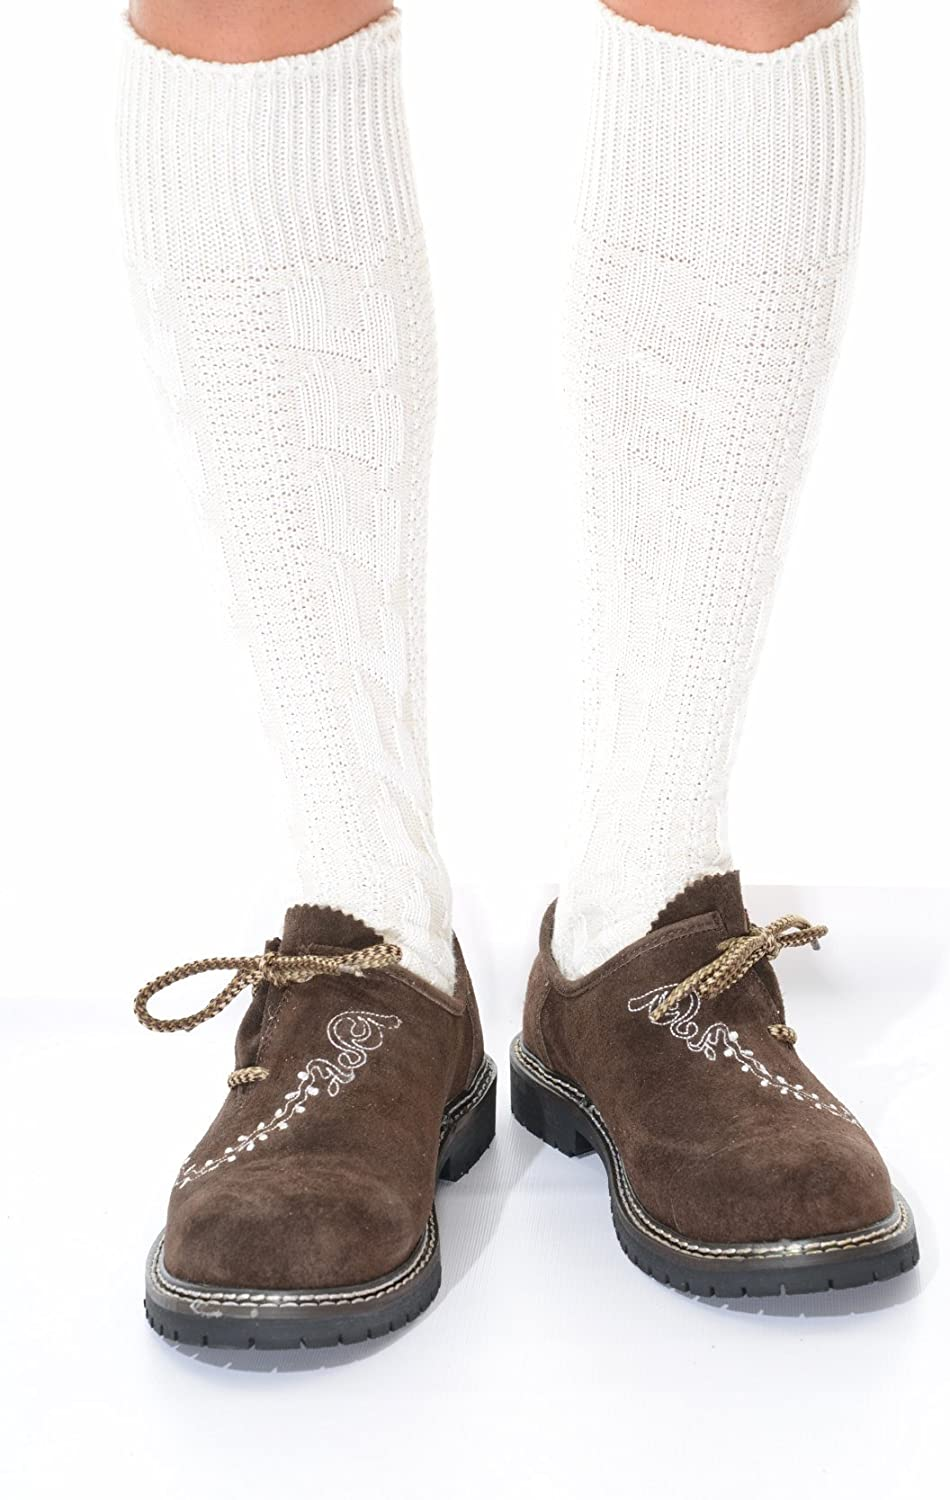 Long German Lederhosen Socks in cream: Clothing